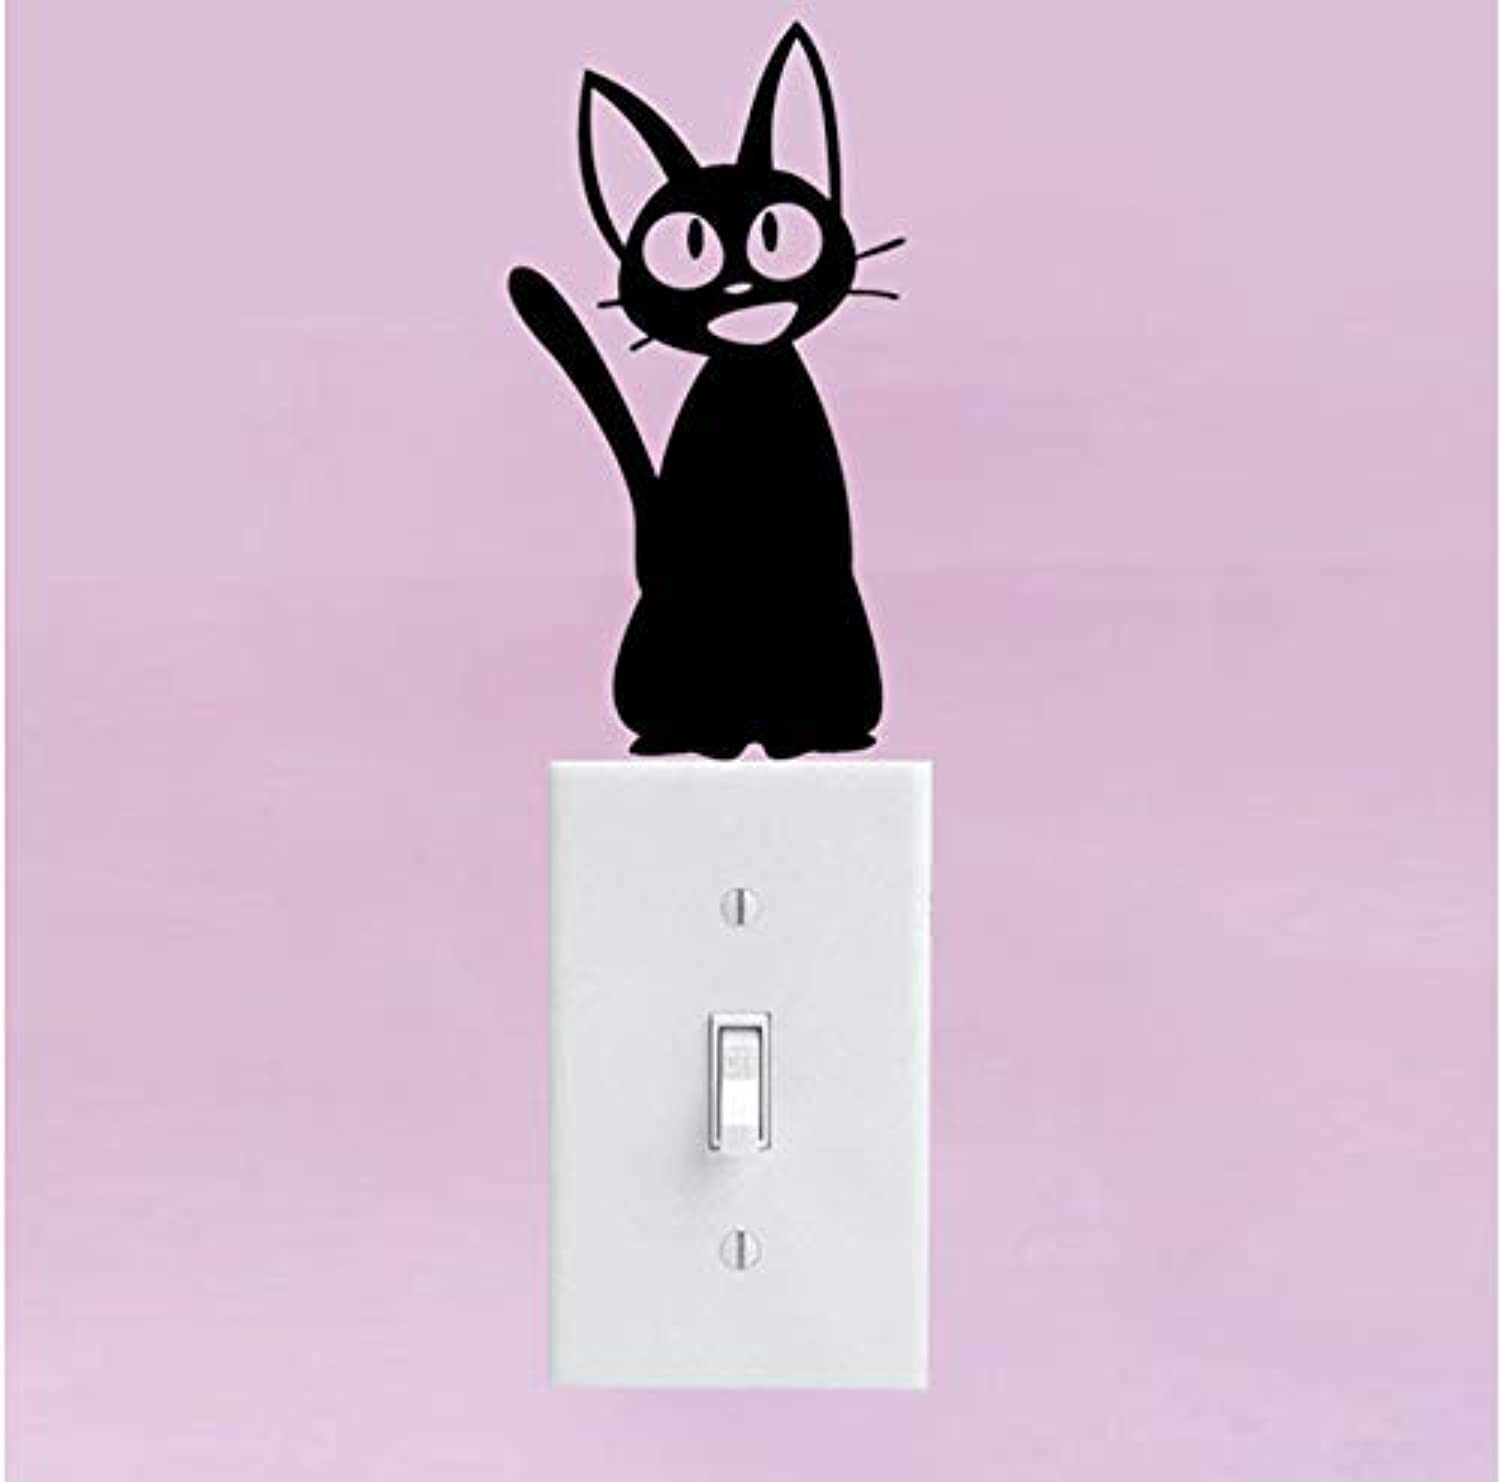 BMY Cat Vinyl Decal Sticker Delivery Service Anime Cartoon Switch Wall Decor